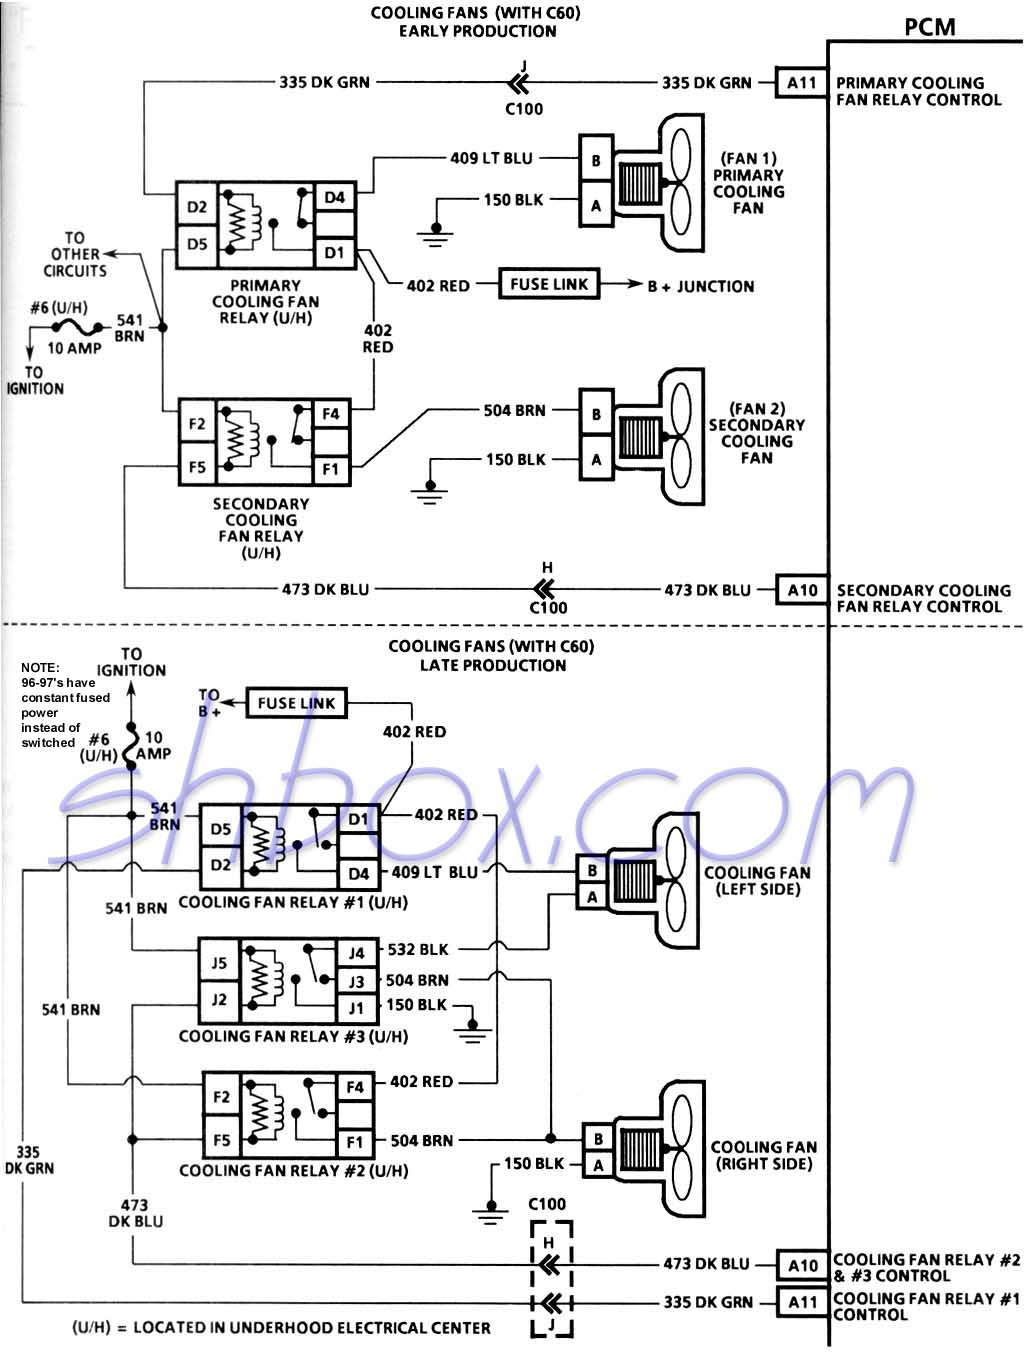 6kz6q Volkswagen Touareg Crankshaft Position Sensor together with 73y5r Grand Cherokee Oil Pressure Switch Located moreover 2010 Chevy Equinox 2 4 Engine Diagram furthermore P 0900c15280267ae4 furthermore Tundra Oil Filter Location Free Download Wiring Diagram Schematic. on vw beetle oil pressure sensor